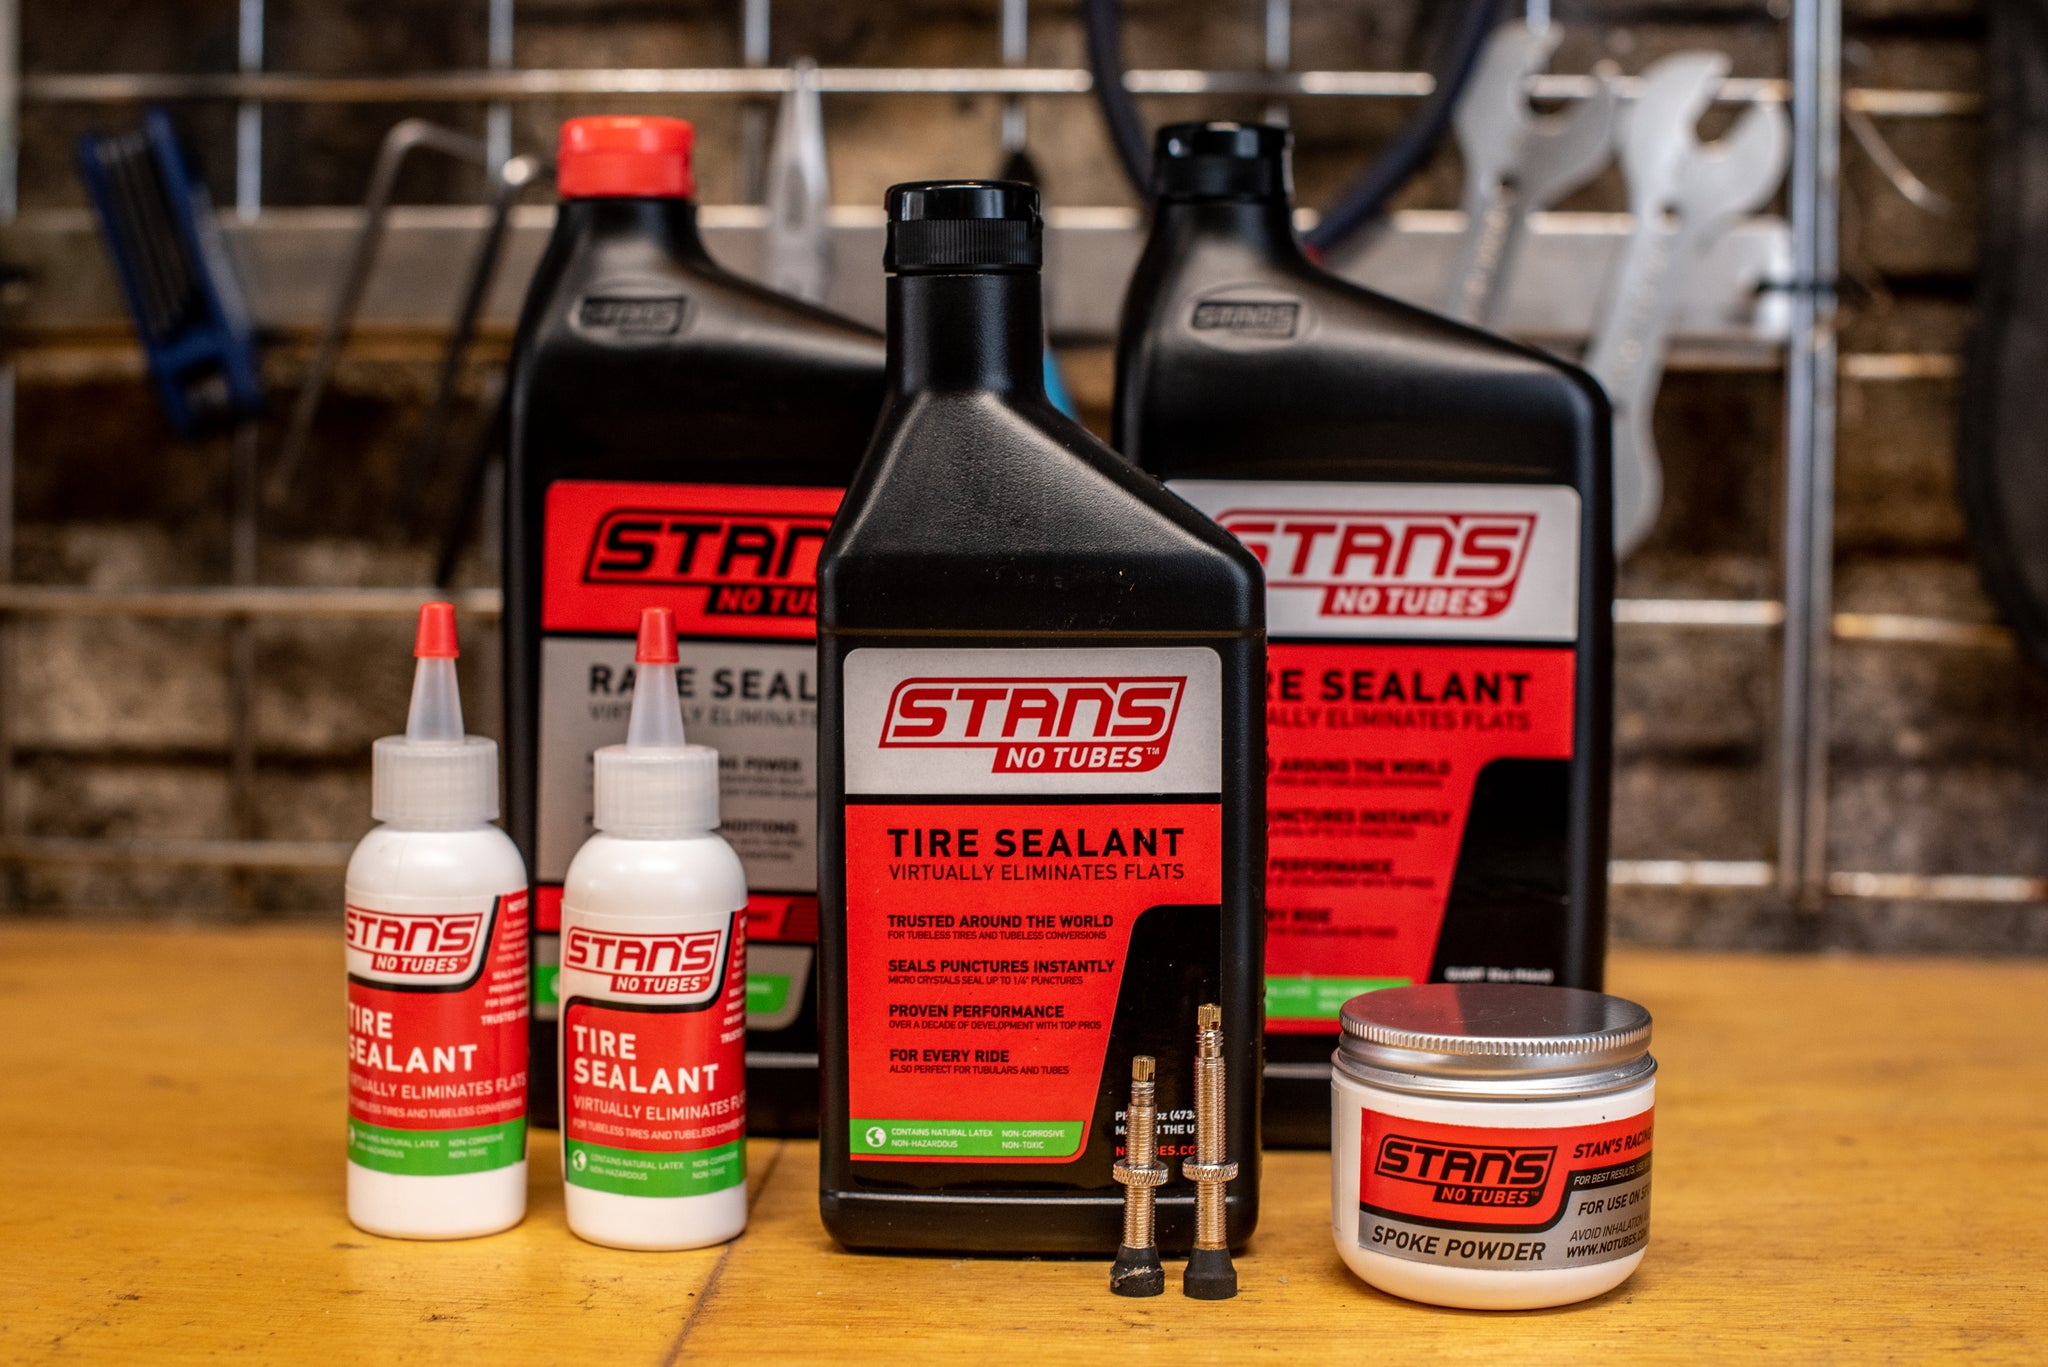 Tubeless road tires. Stan's NoTubes sealant